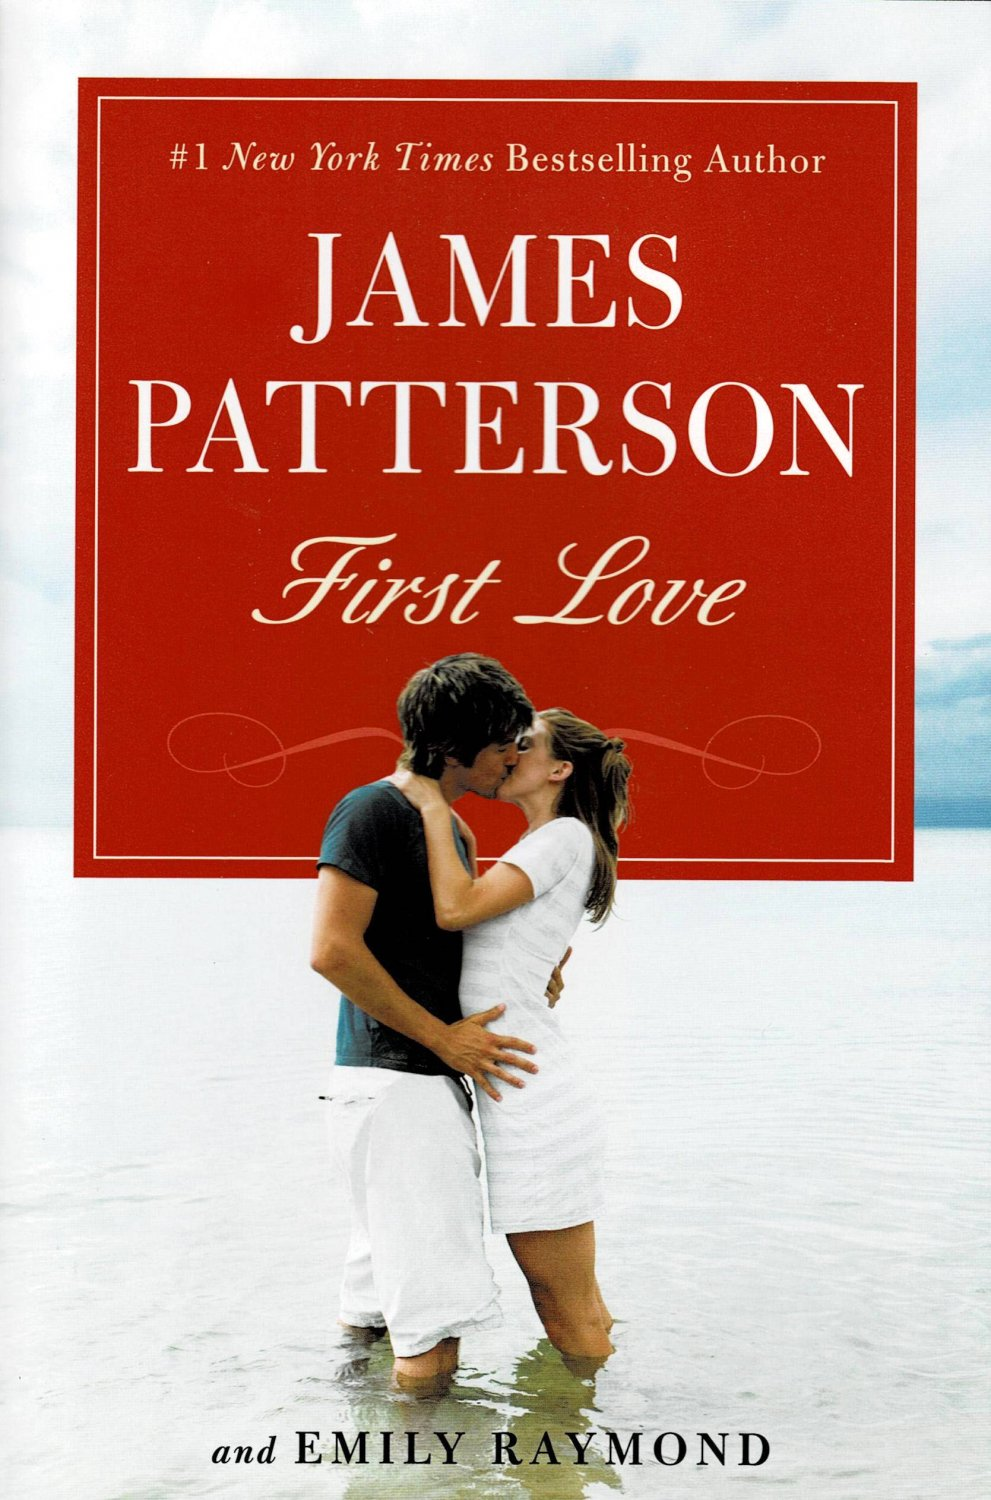 First Love By James Patterson And Emily Raymond Large Print Edition Hardcover Book 2014